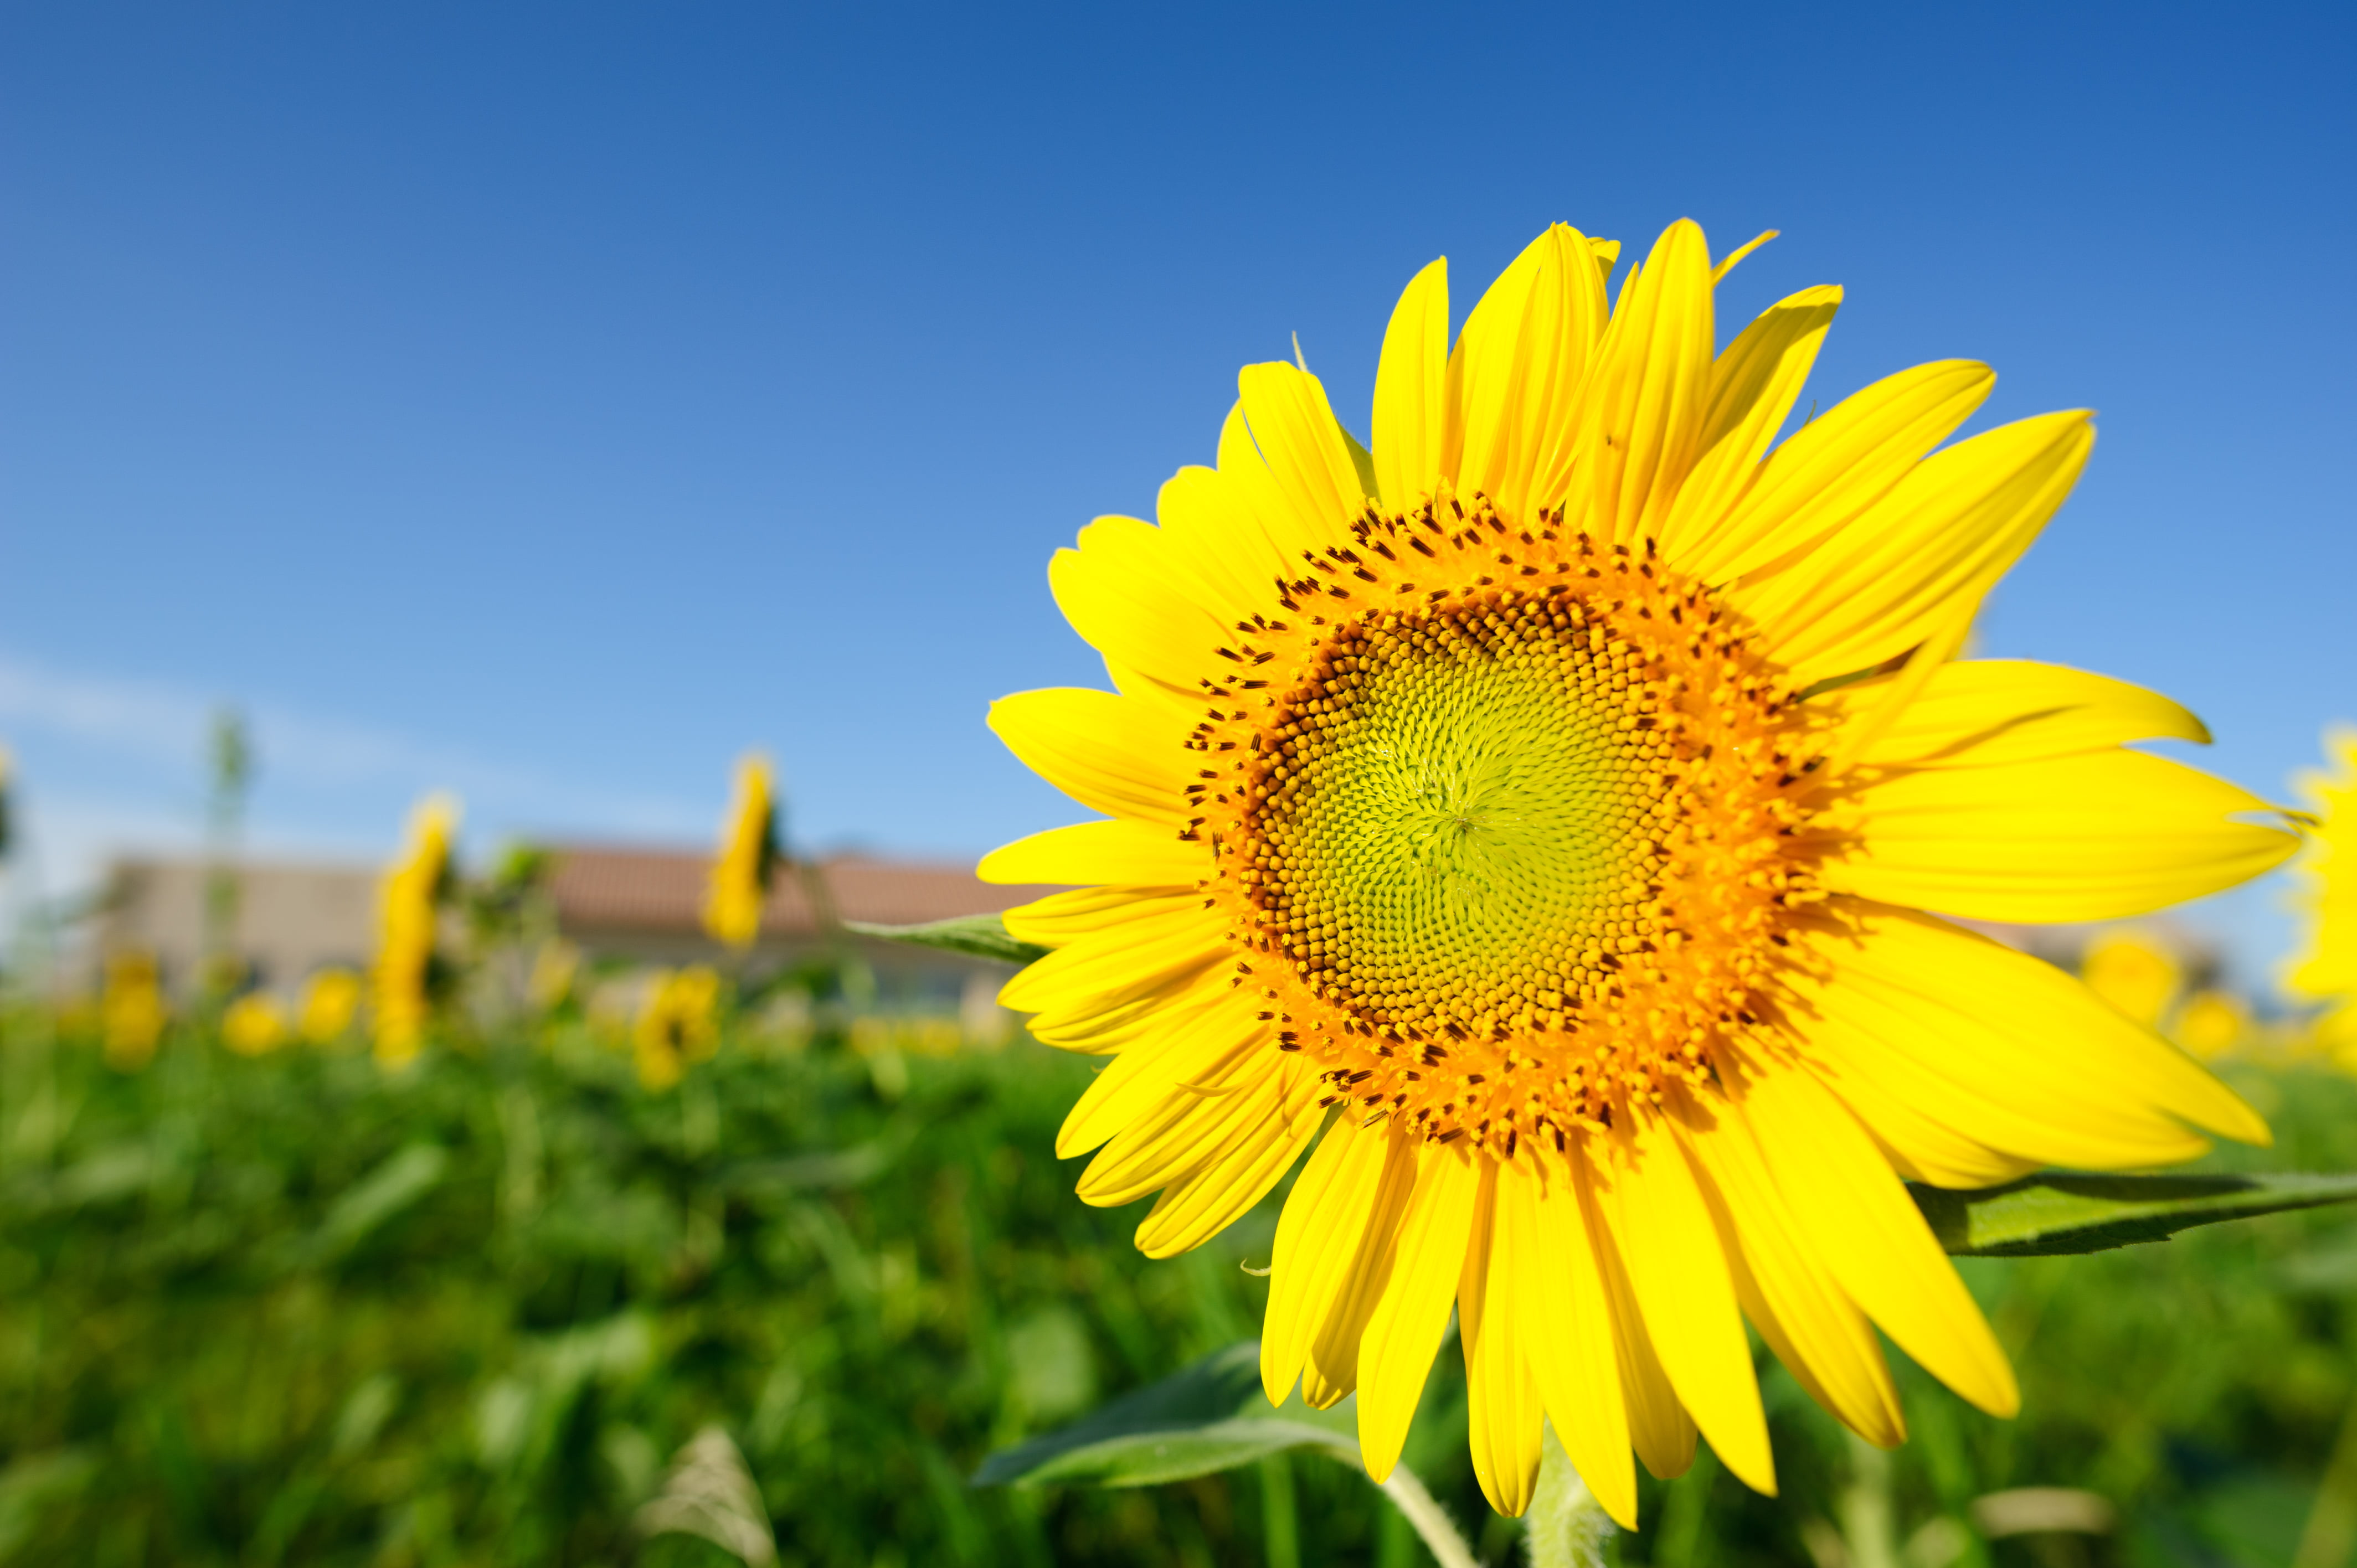 Selective focus photography of sunflower HD wallpaper | Wallpaper Flare